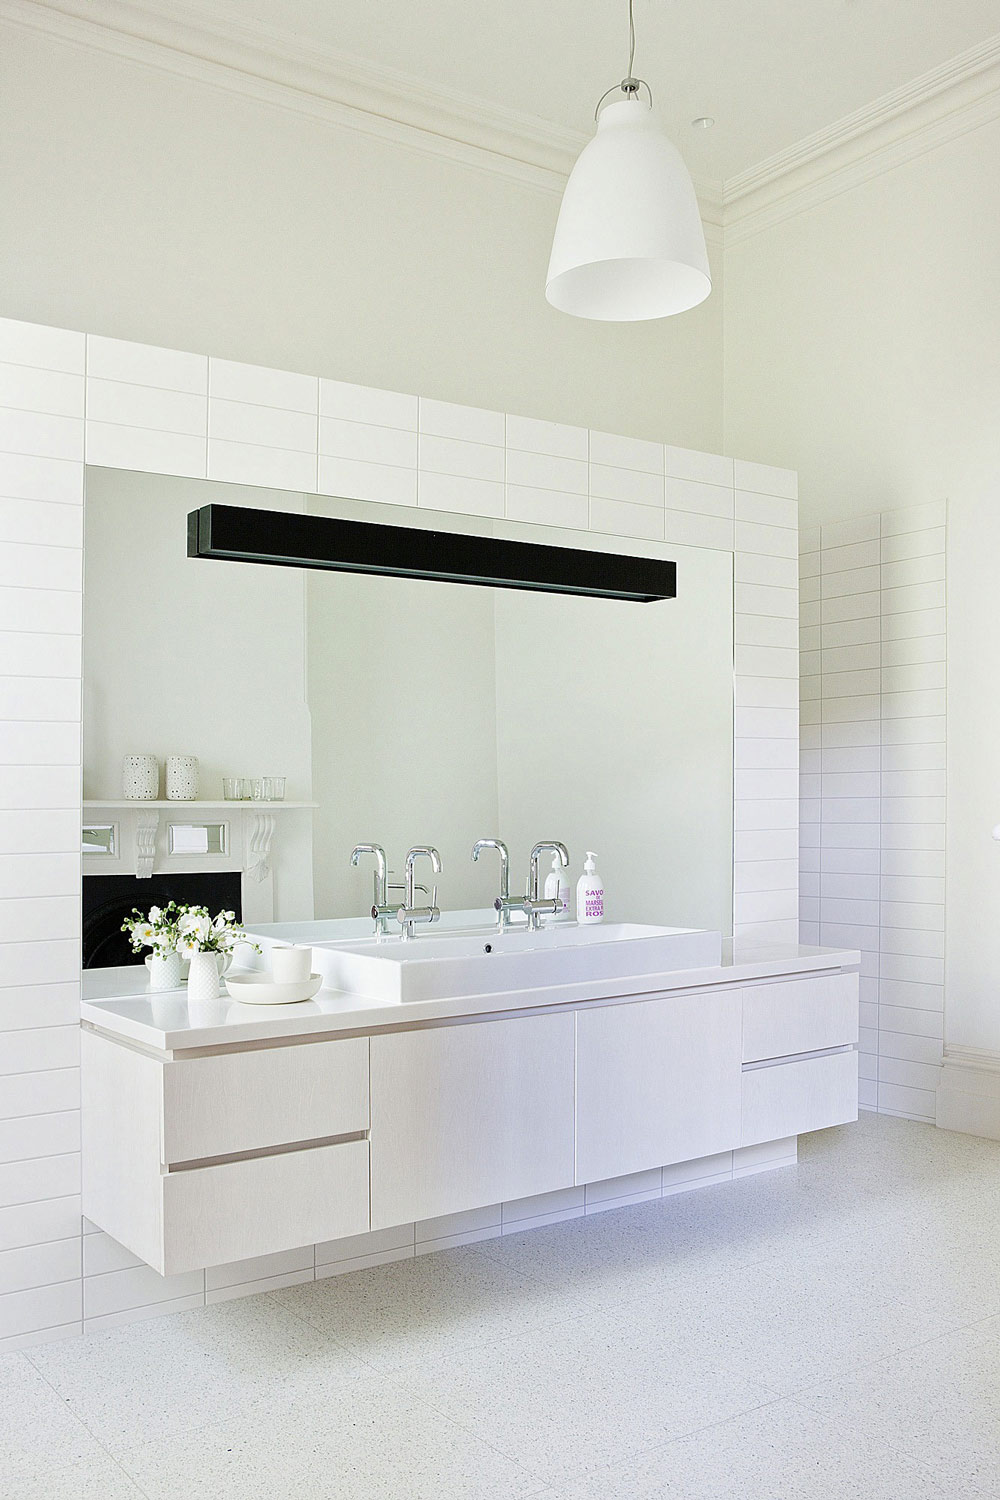 White Bathroom Sink, Twin Peaks House in Hawthorn, Australia by Jackson Clements Burrows